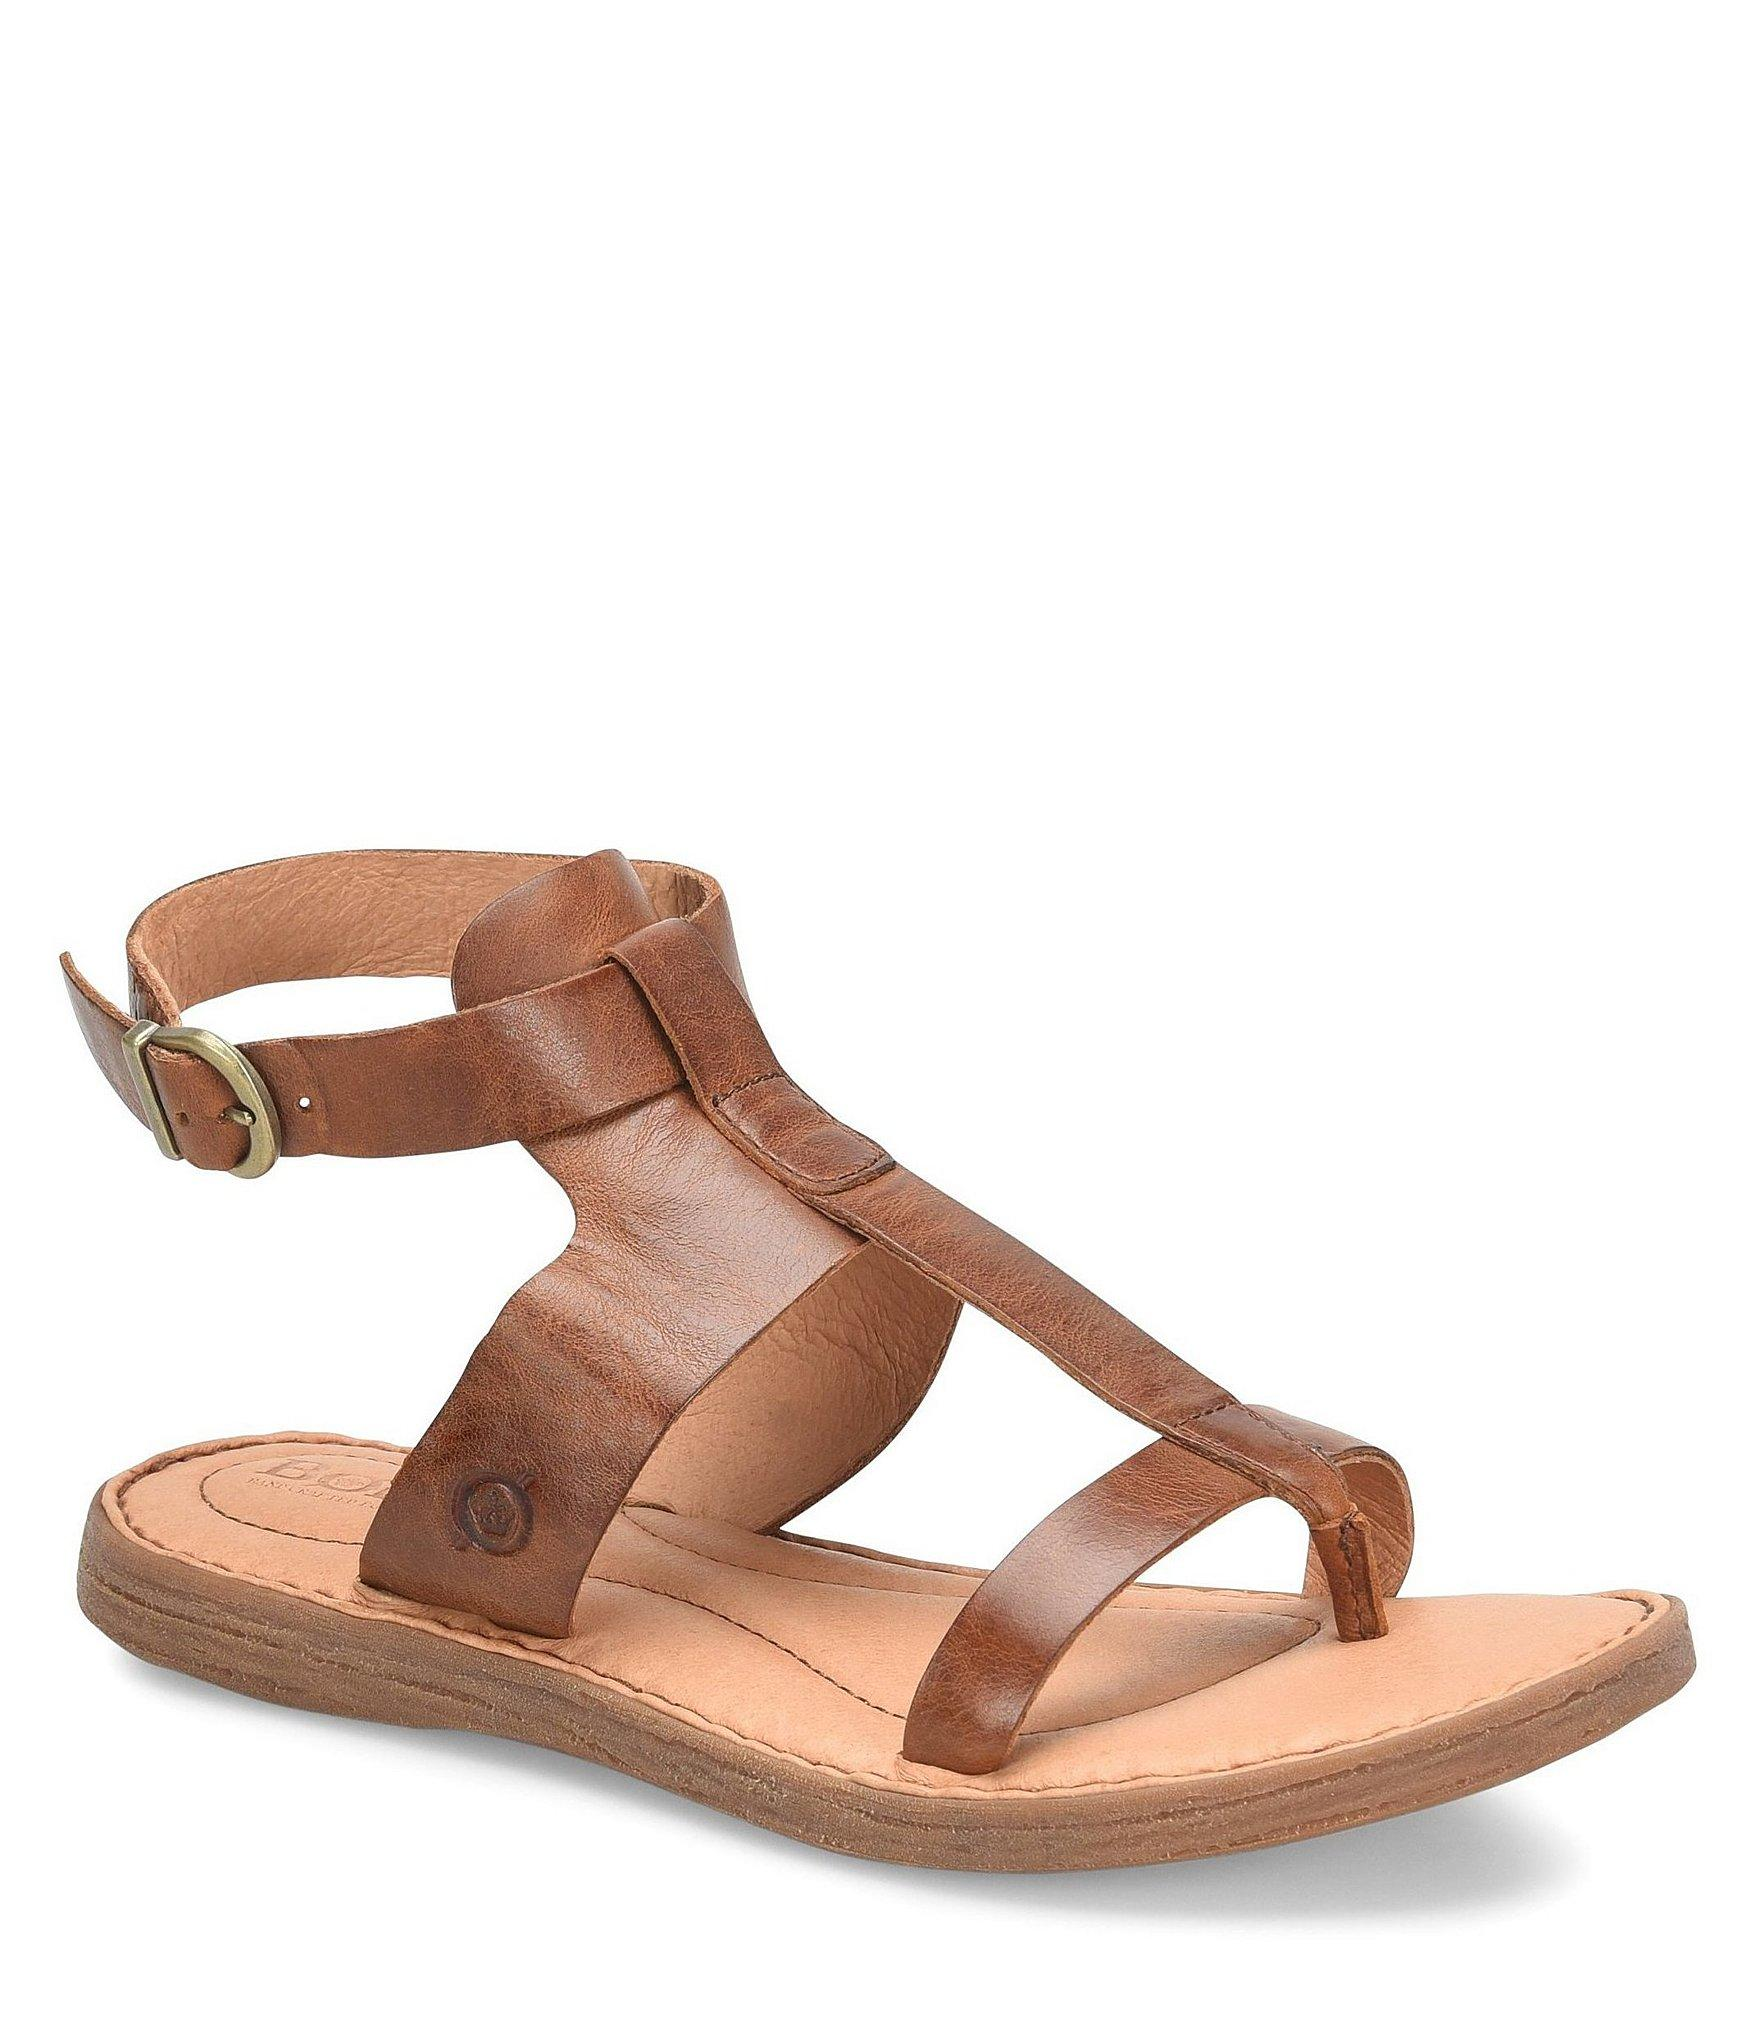 57bcc6f74b50 Lyst - Born St Helens Leather Gladiator Thong Sandals in Brown